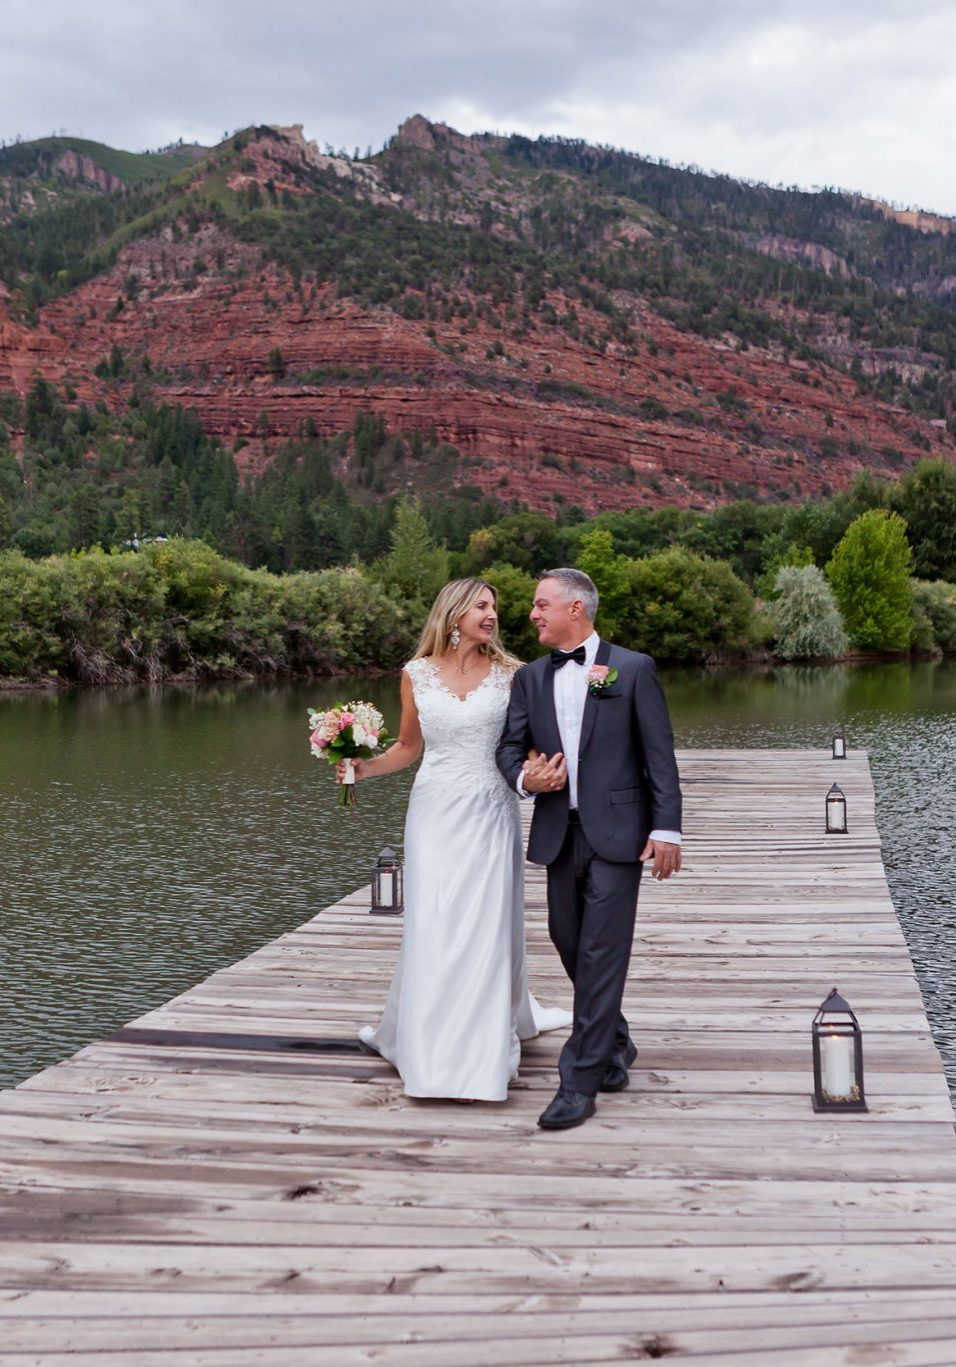 Wedding Reception at River Bend Ranch, Durango Colorado